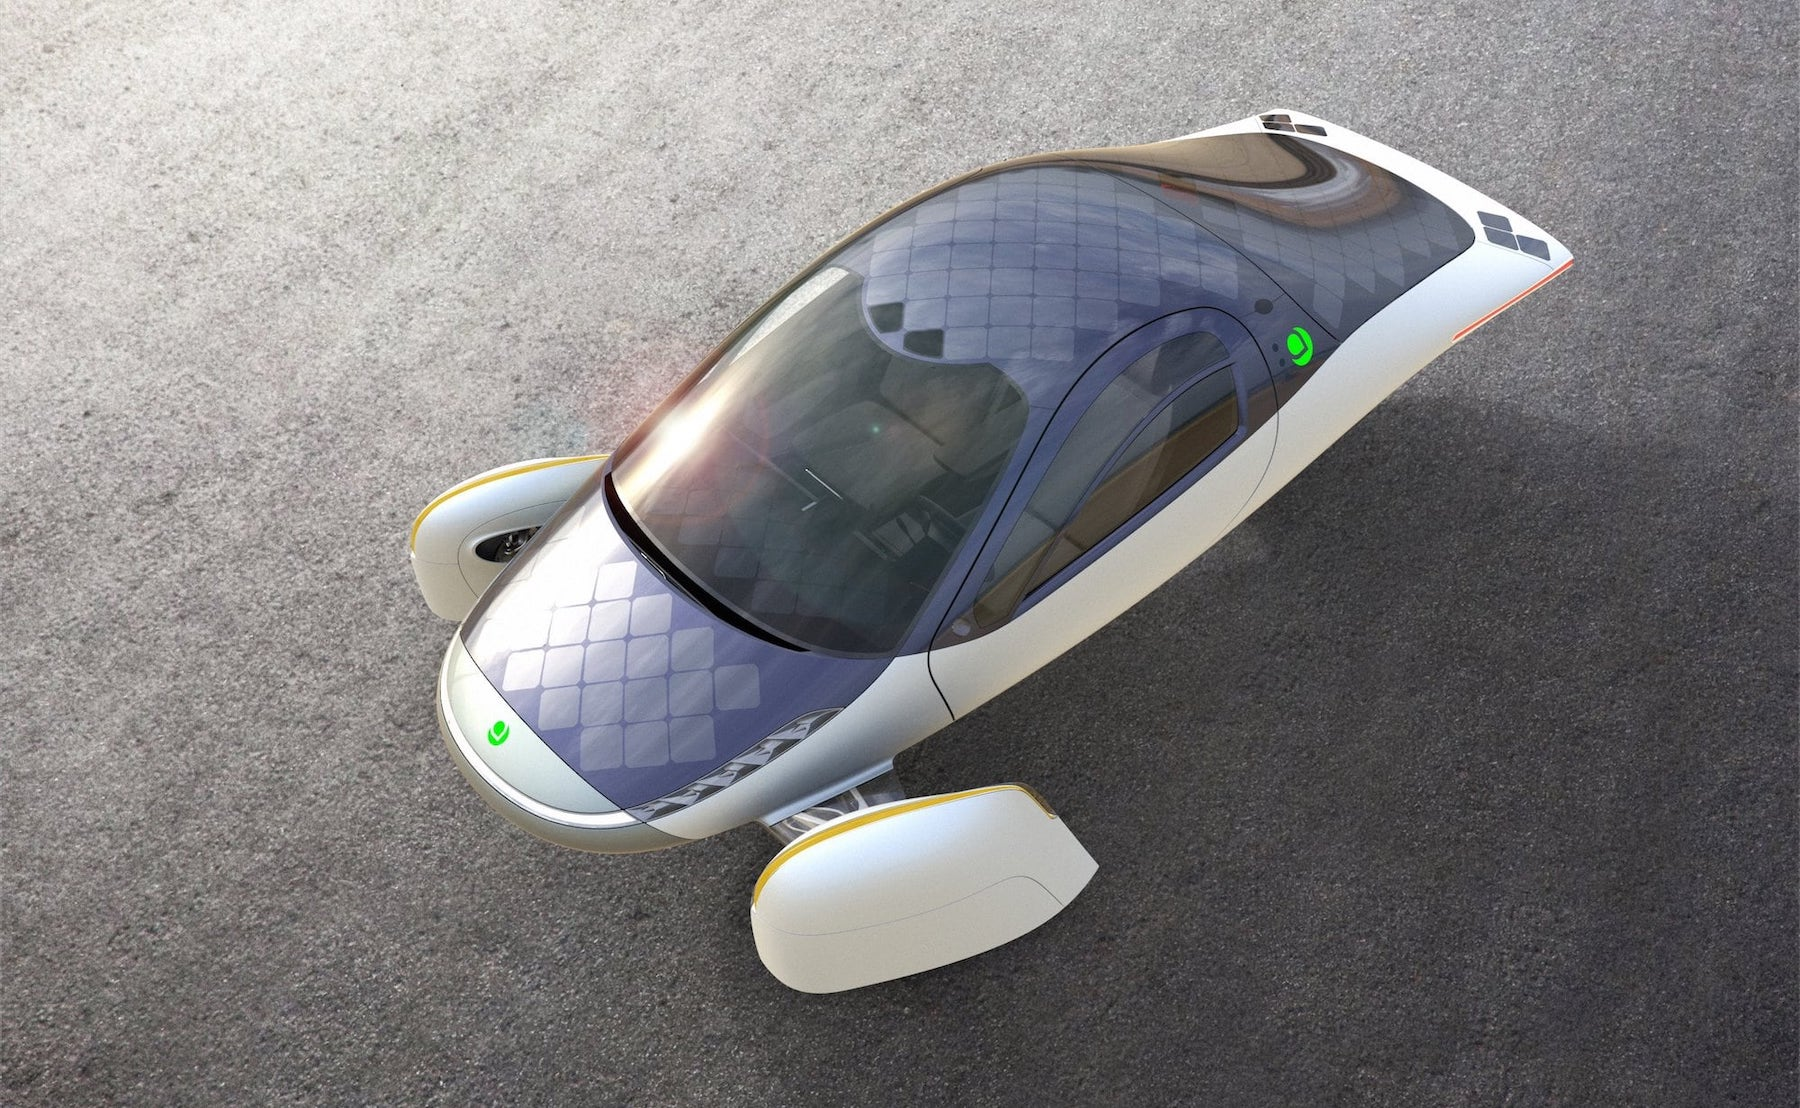 Aptera Solar-Charging Electric Vehicle travels 1,000 miles on a single charge